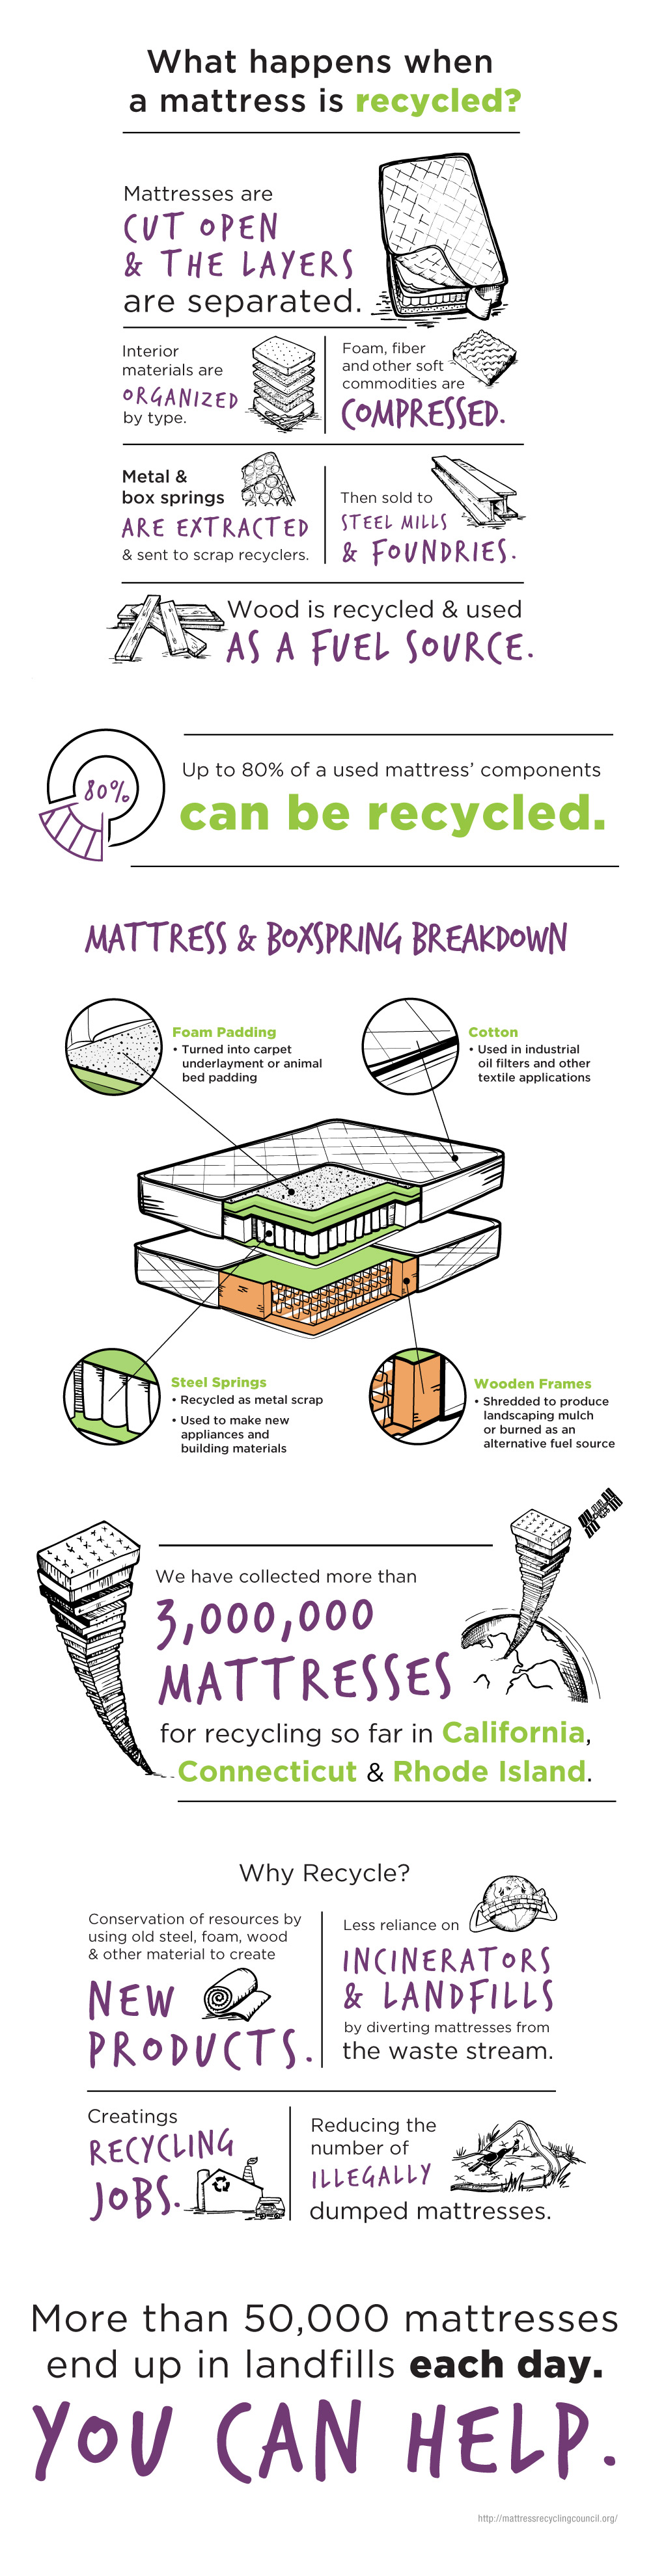 recycling-as-a-mattress-disposal-solution-infographic